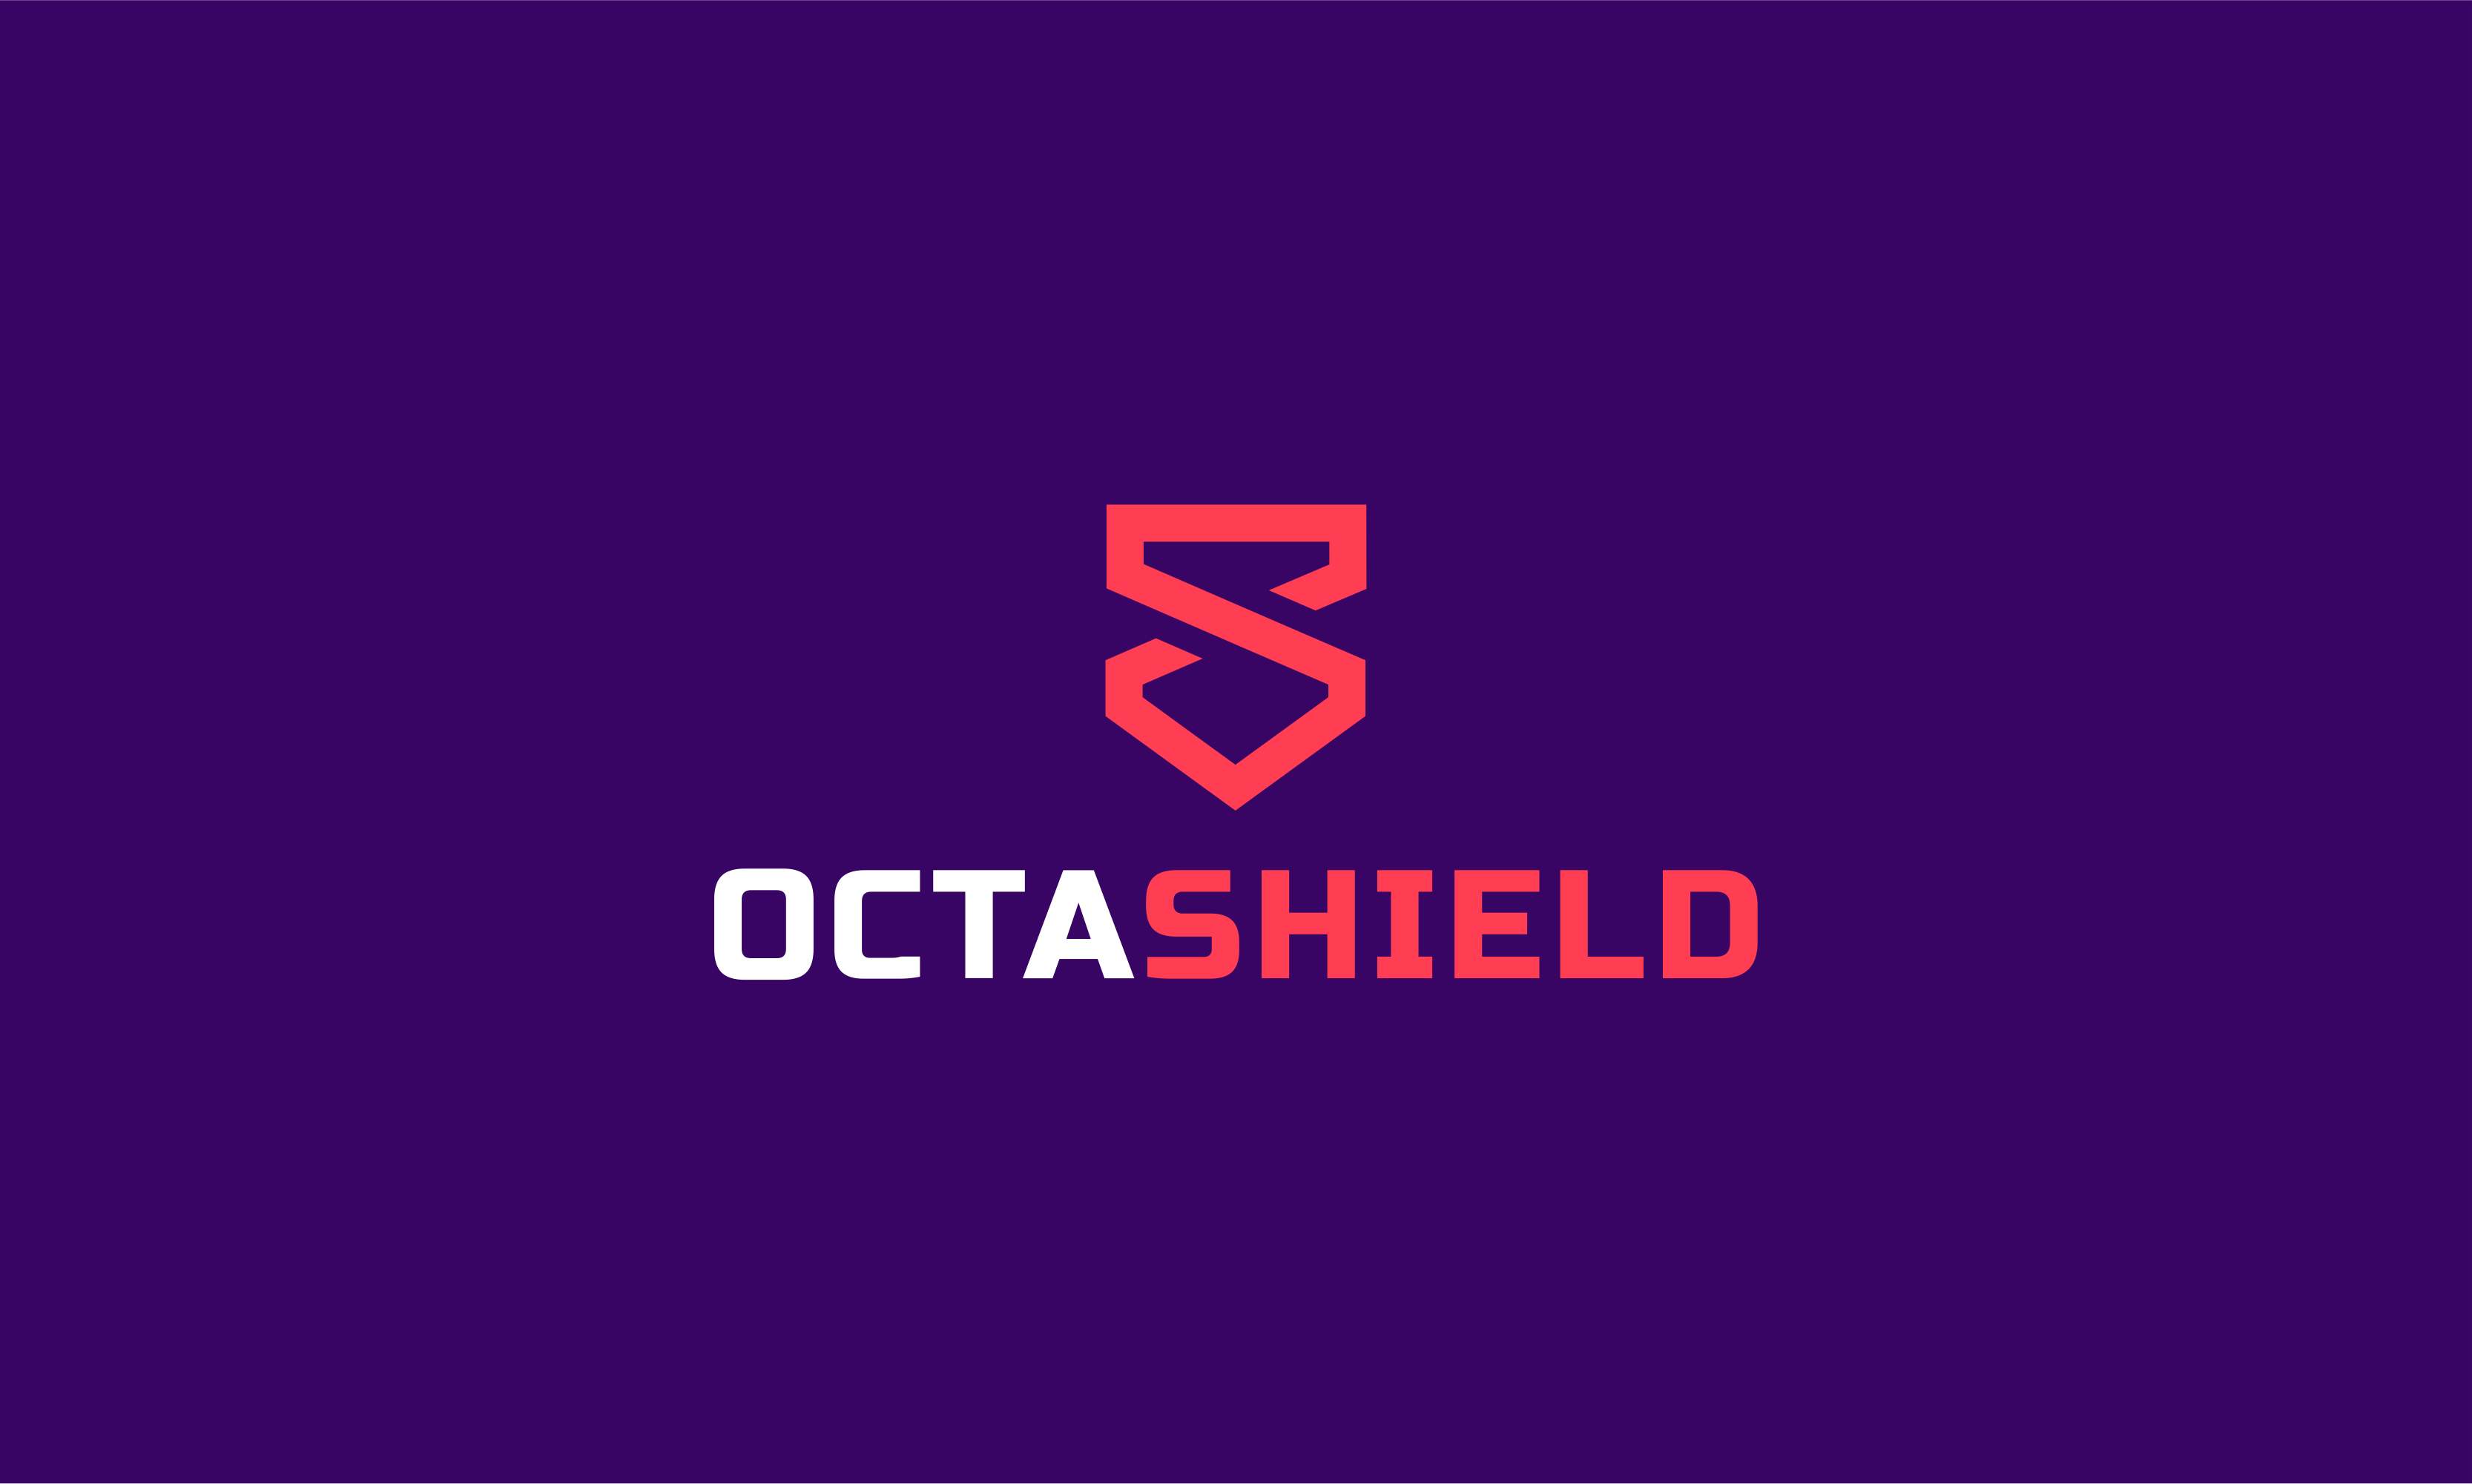 Octashield - Modern business name for sale